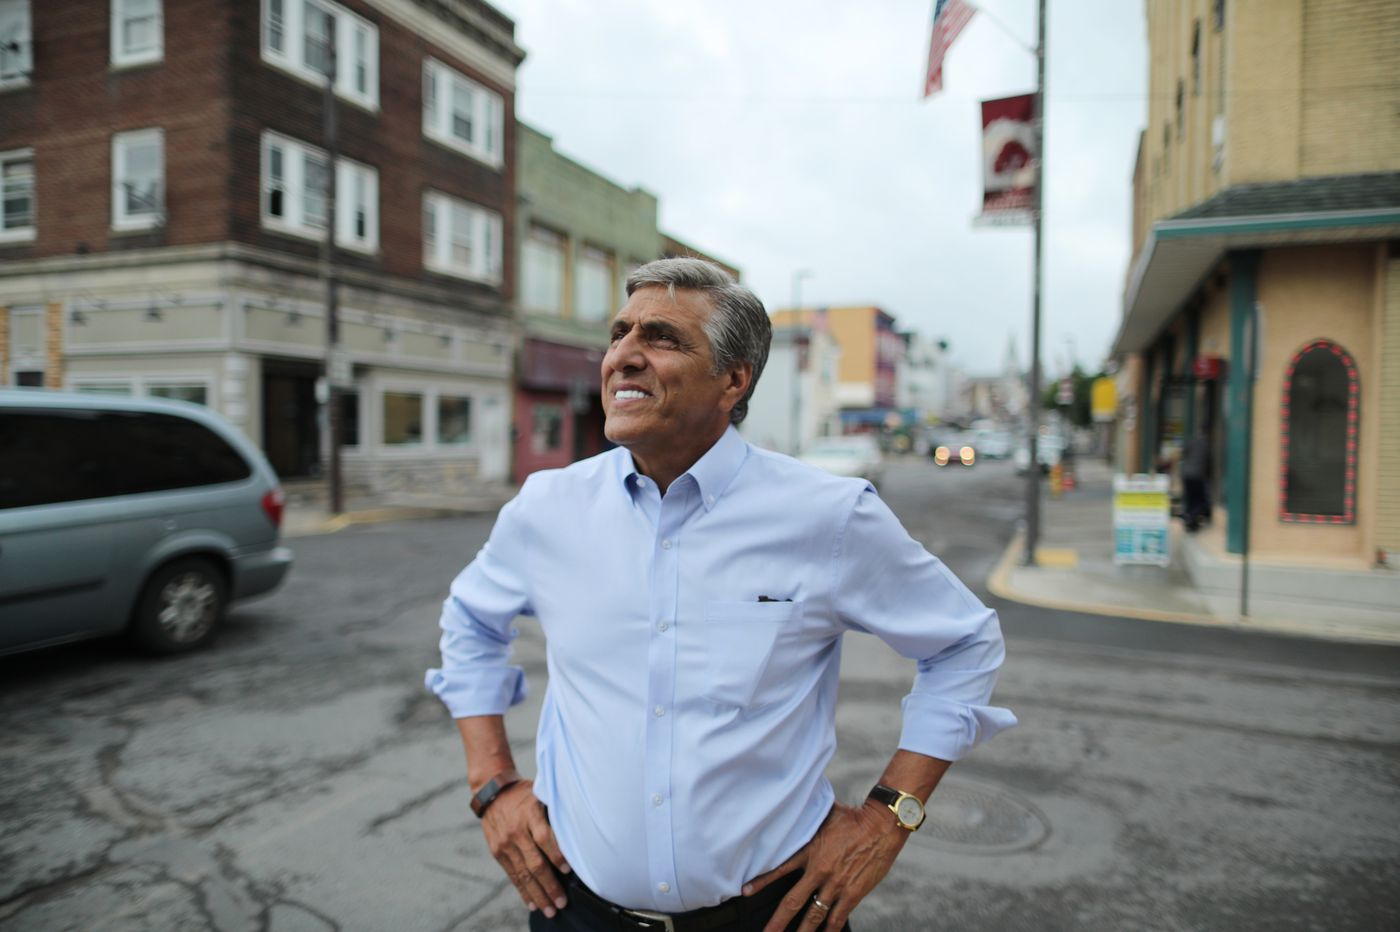 As Lou Barletta's immigration law failed his political brand was born